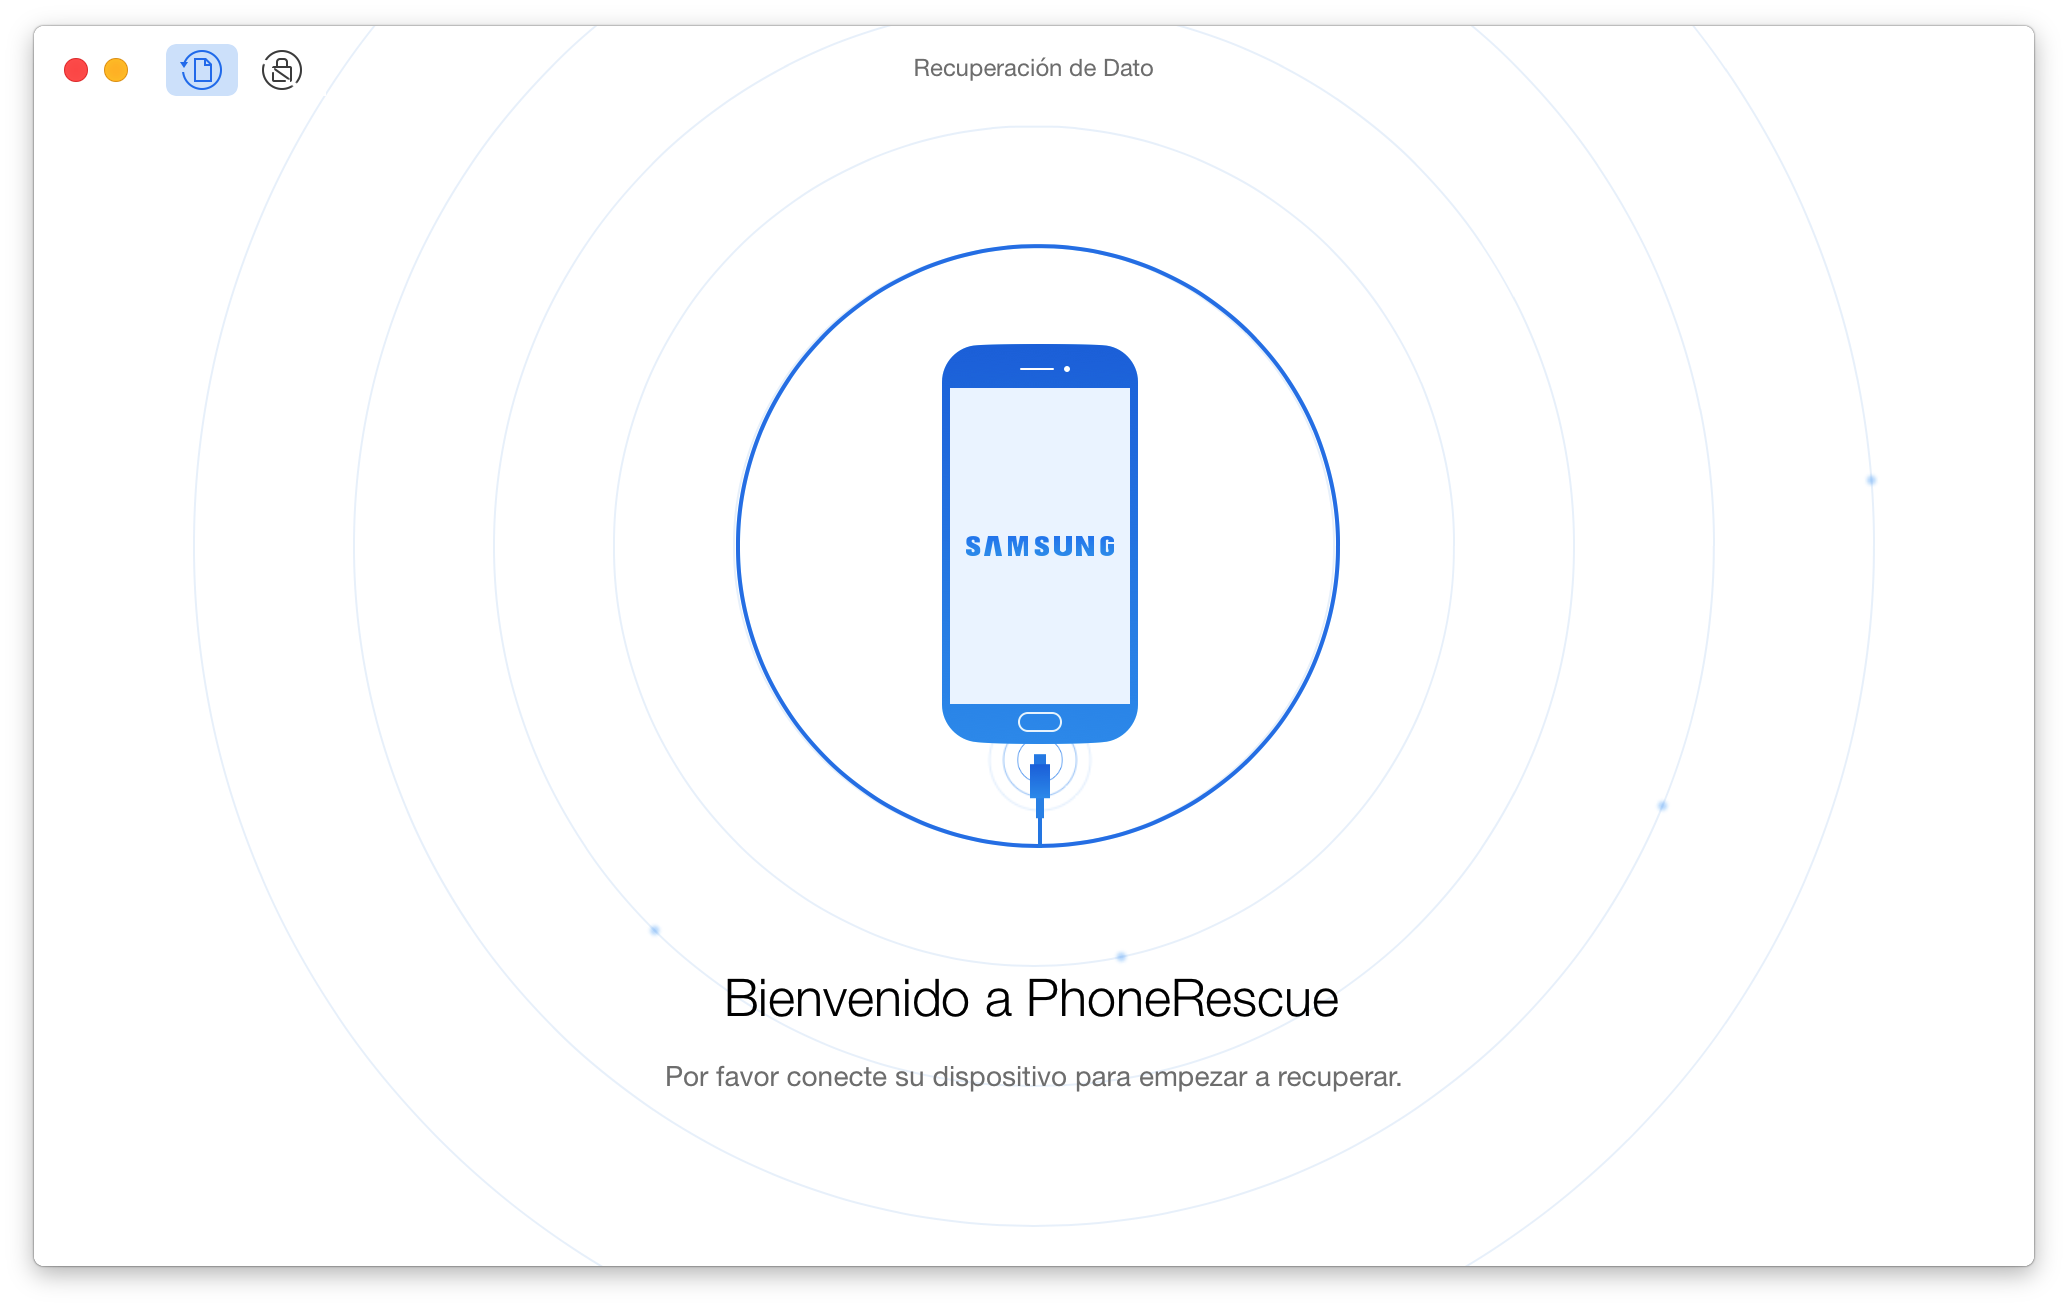 The welcome interface of PhoneRescue for SAMSUNG